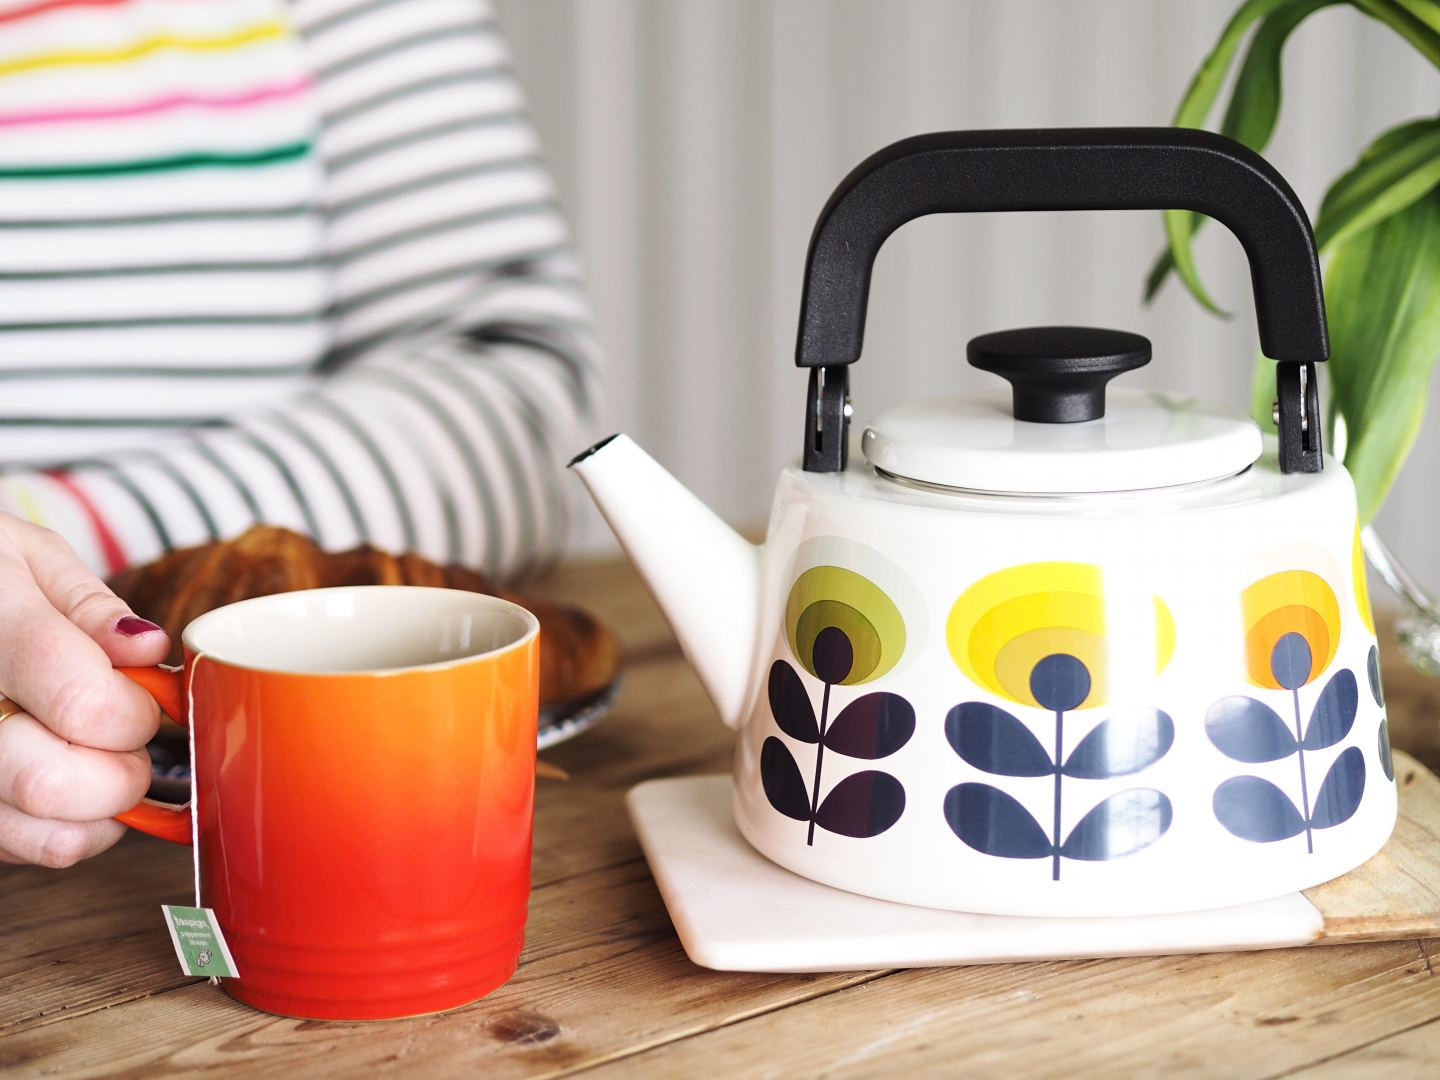 orla kiely teapot retro 1970s colourful home styling fashion blog style design